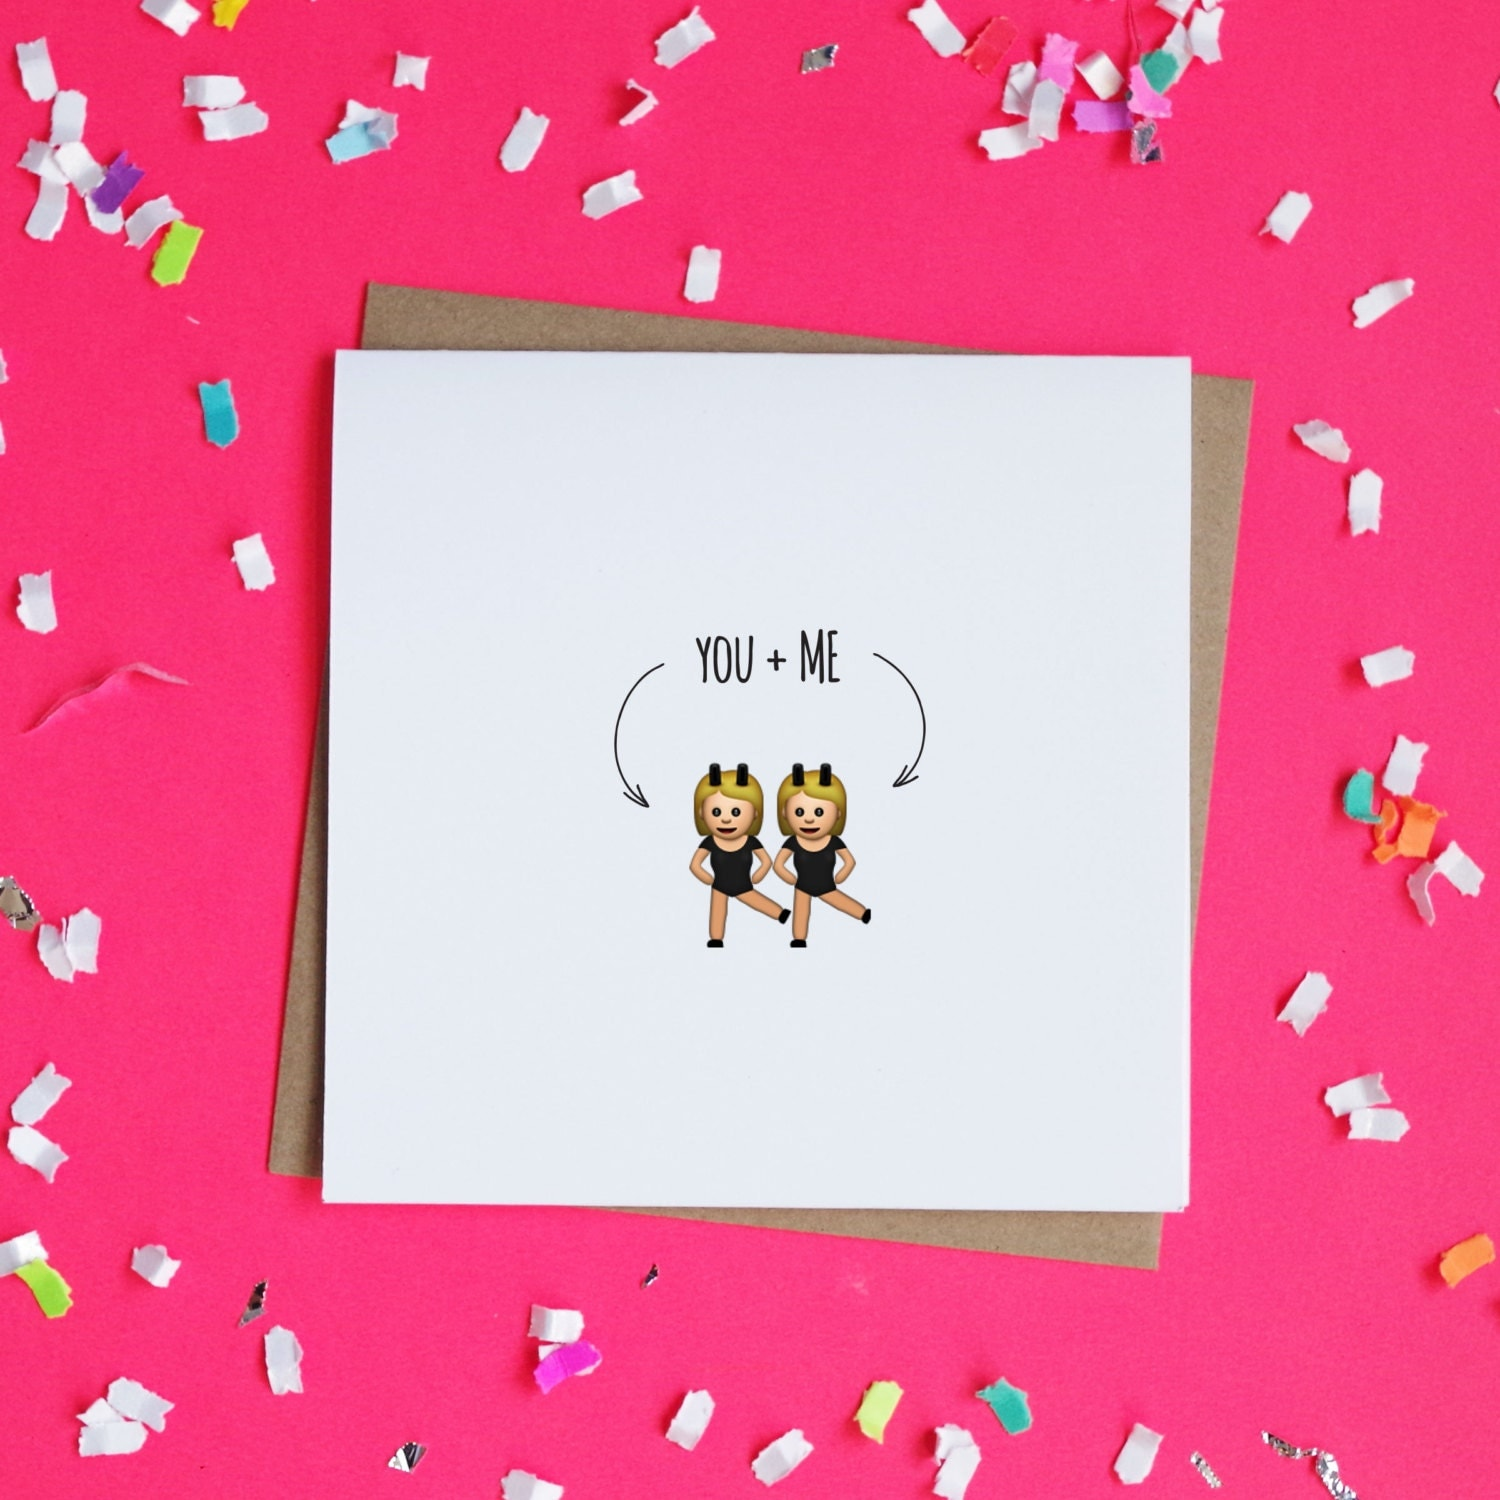 Cute Best Friend Birthday Cards Images  Free Birthday Cards